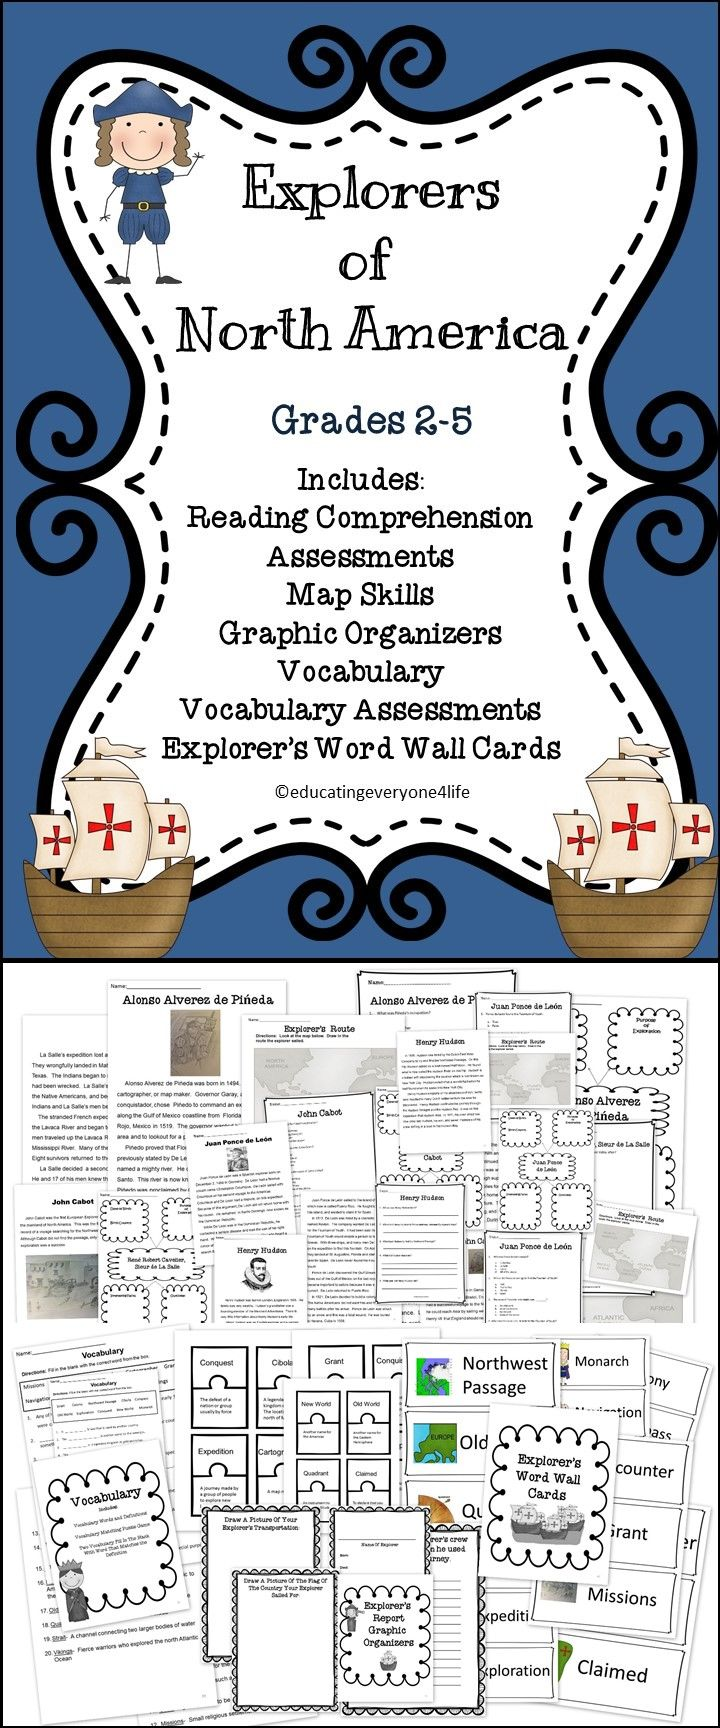 Free Worksheet Early Explorers Worksheets 17 best ideas about explorers unit on pinterest early of north america includes reading comprehension map skills assessments vocabulary